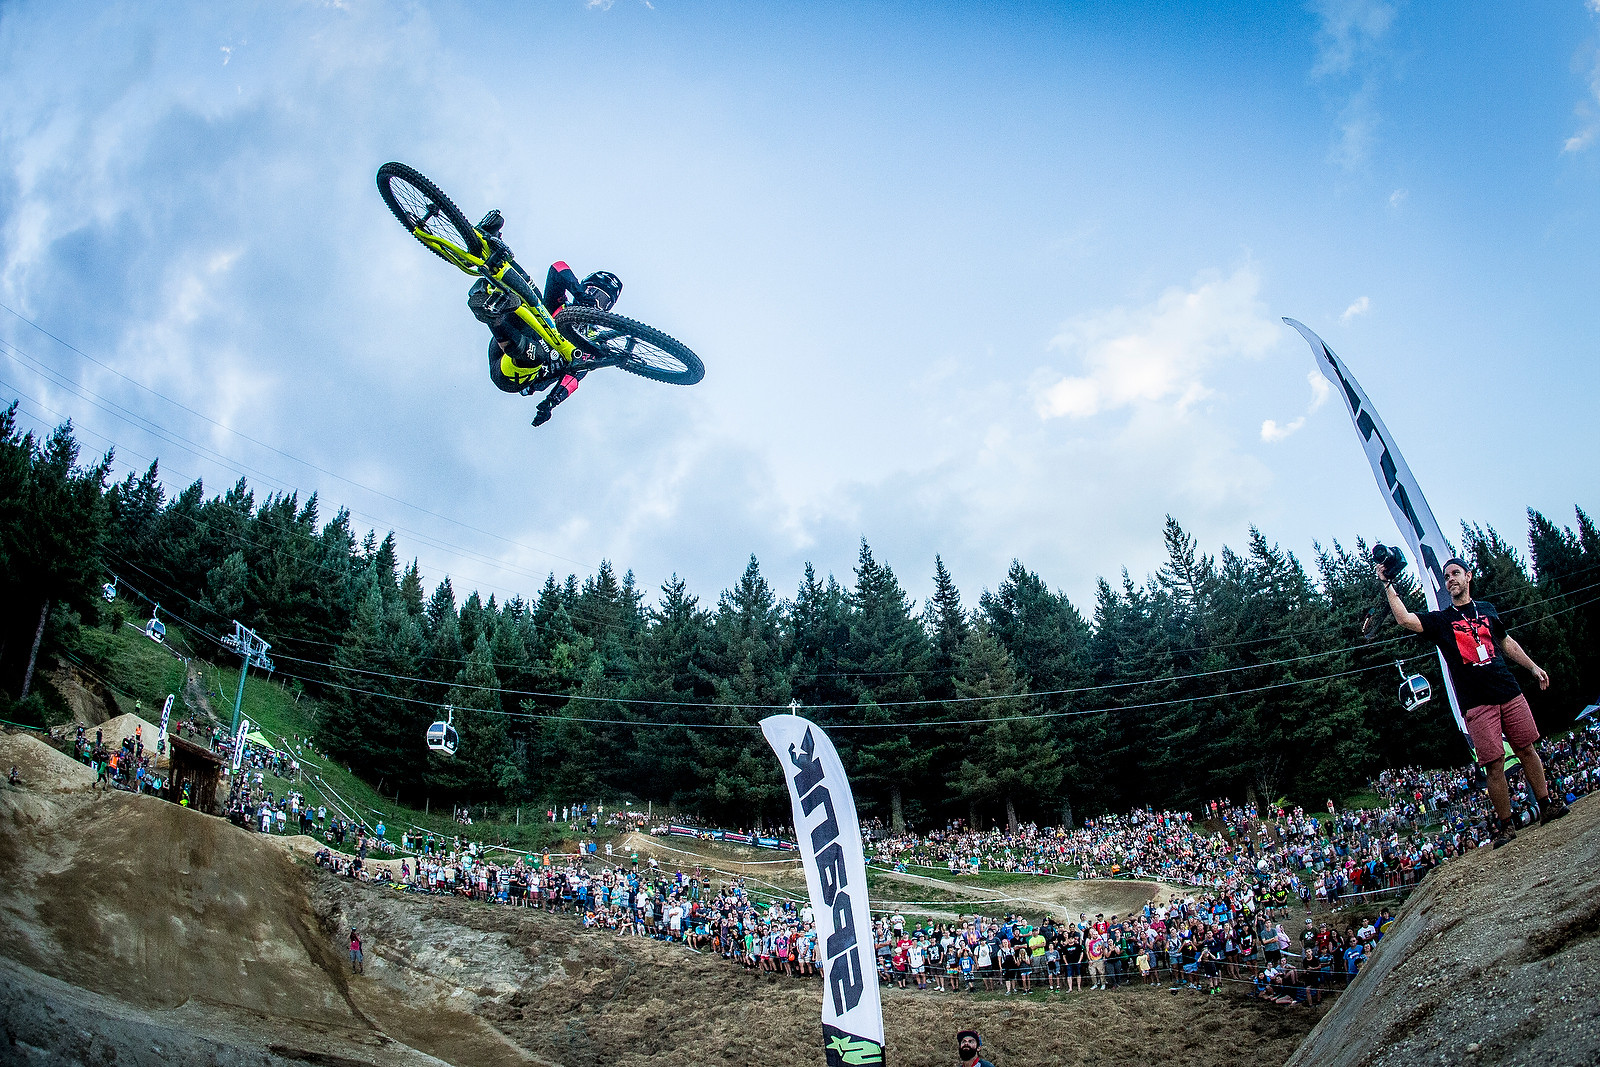 Whip Off Madness from Crankworx NZ - Tyler McCaul - Whip Off Madness from Crankworx NZ - Mountain Biking Pictures - Vital MTB